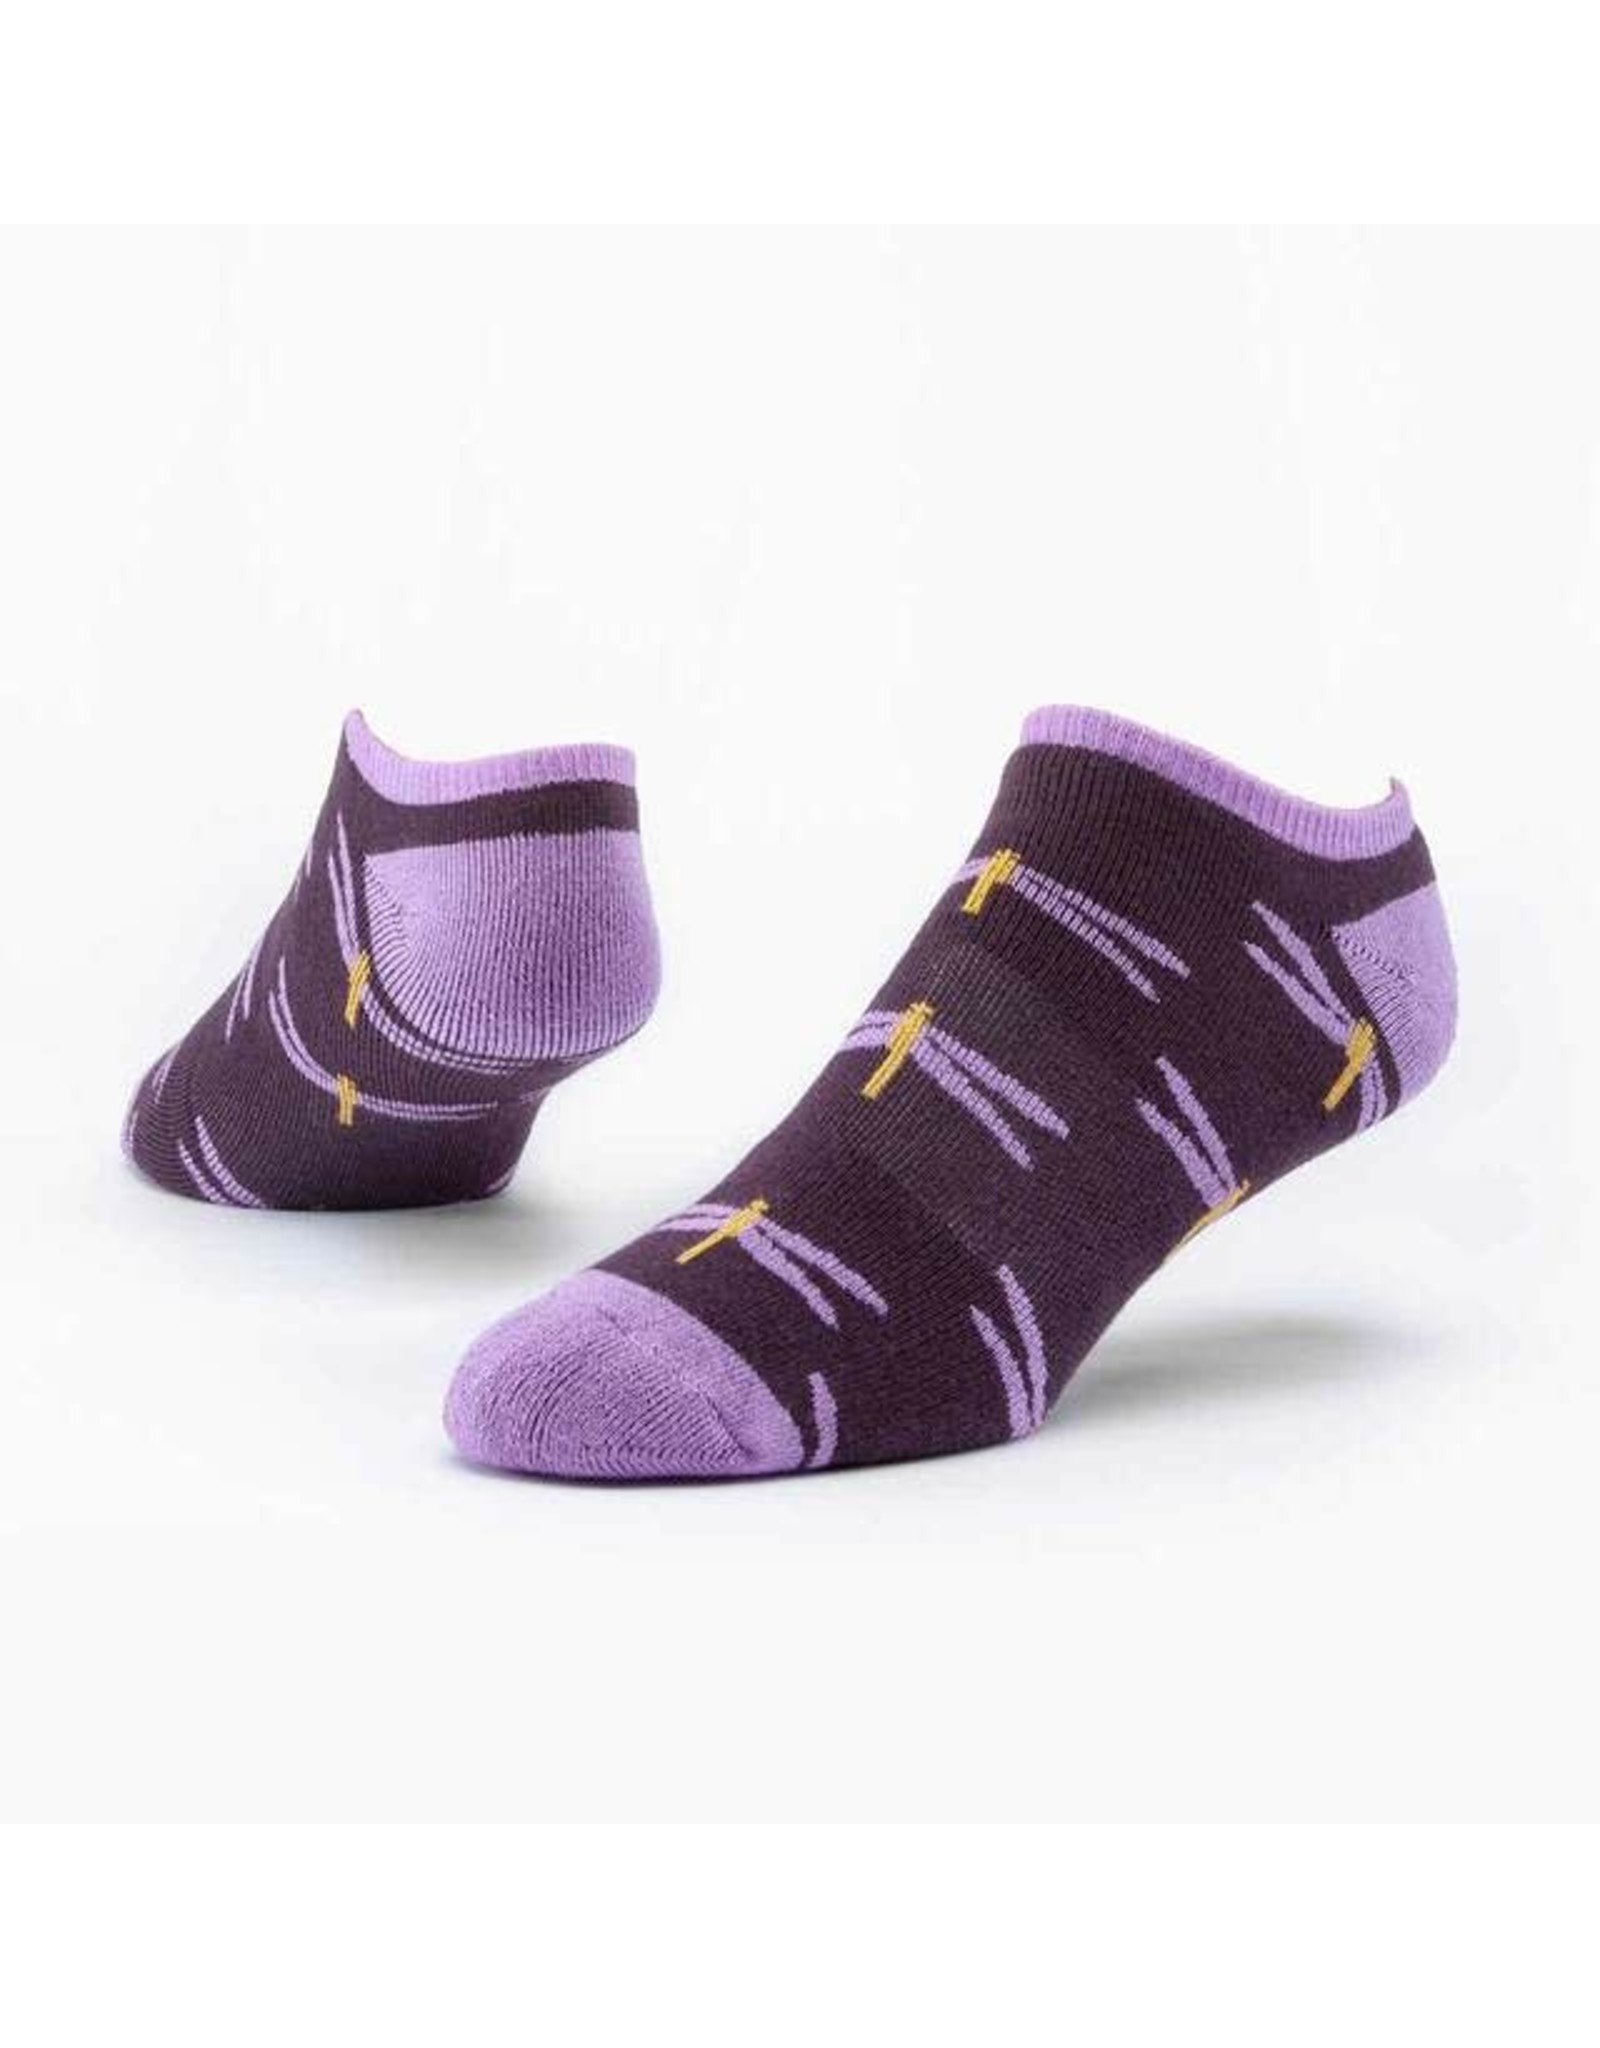 Cotton Footie Socks, Dragonfly